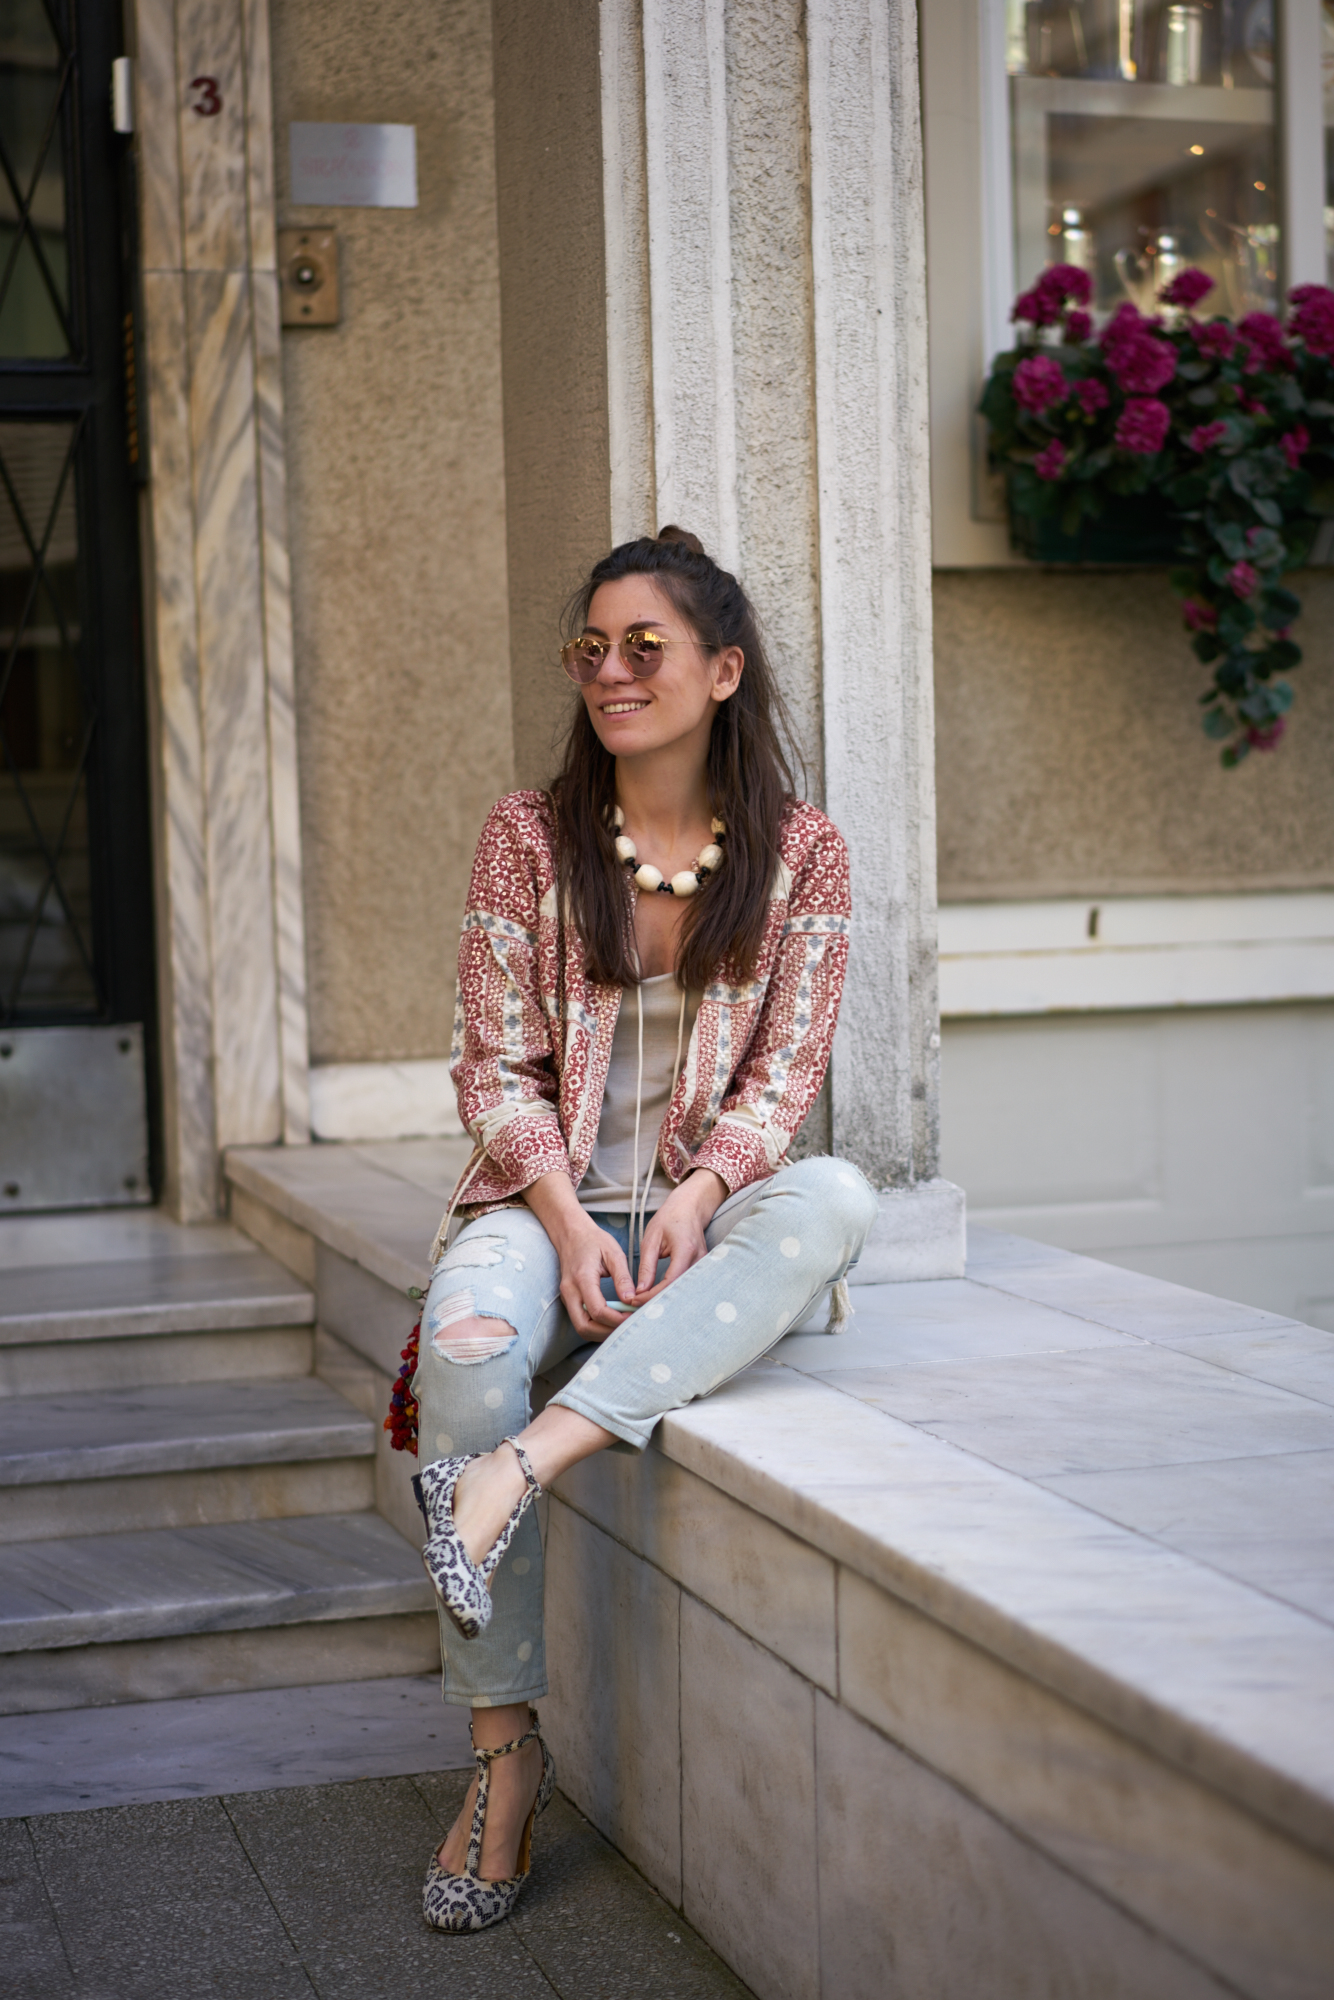 billur saatci, street style, turkish style blogger, marc by marc jacobs, see by chloe, lisa corti, zara, hoss intropia, rayban, style, moda, fashion